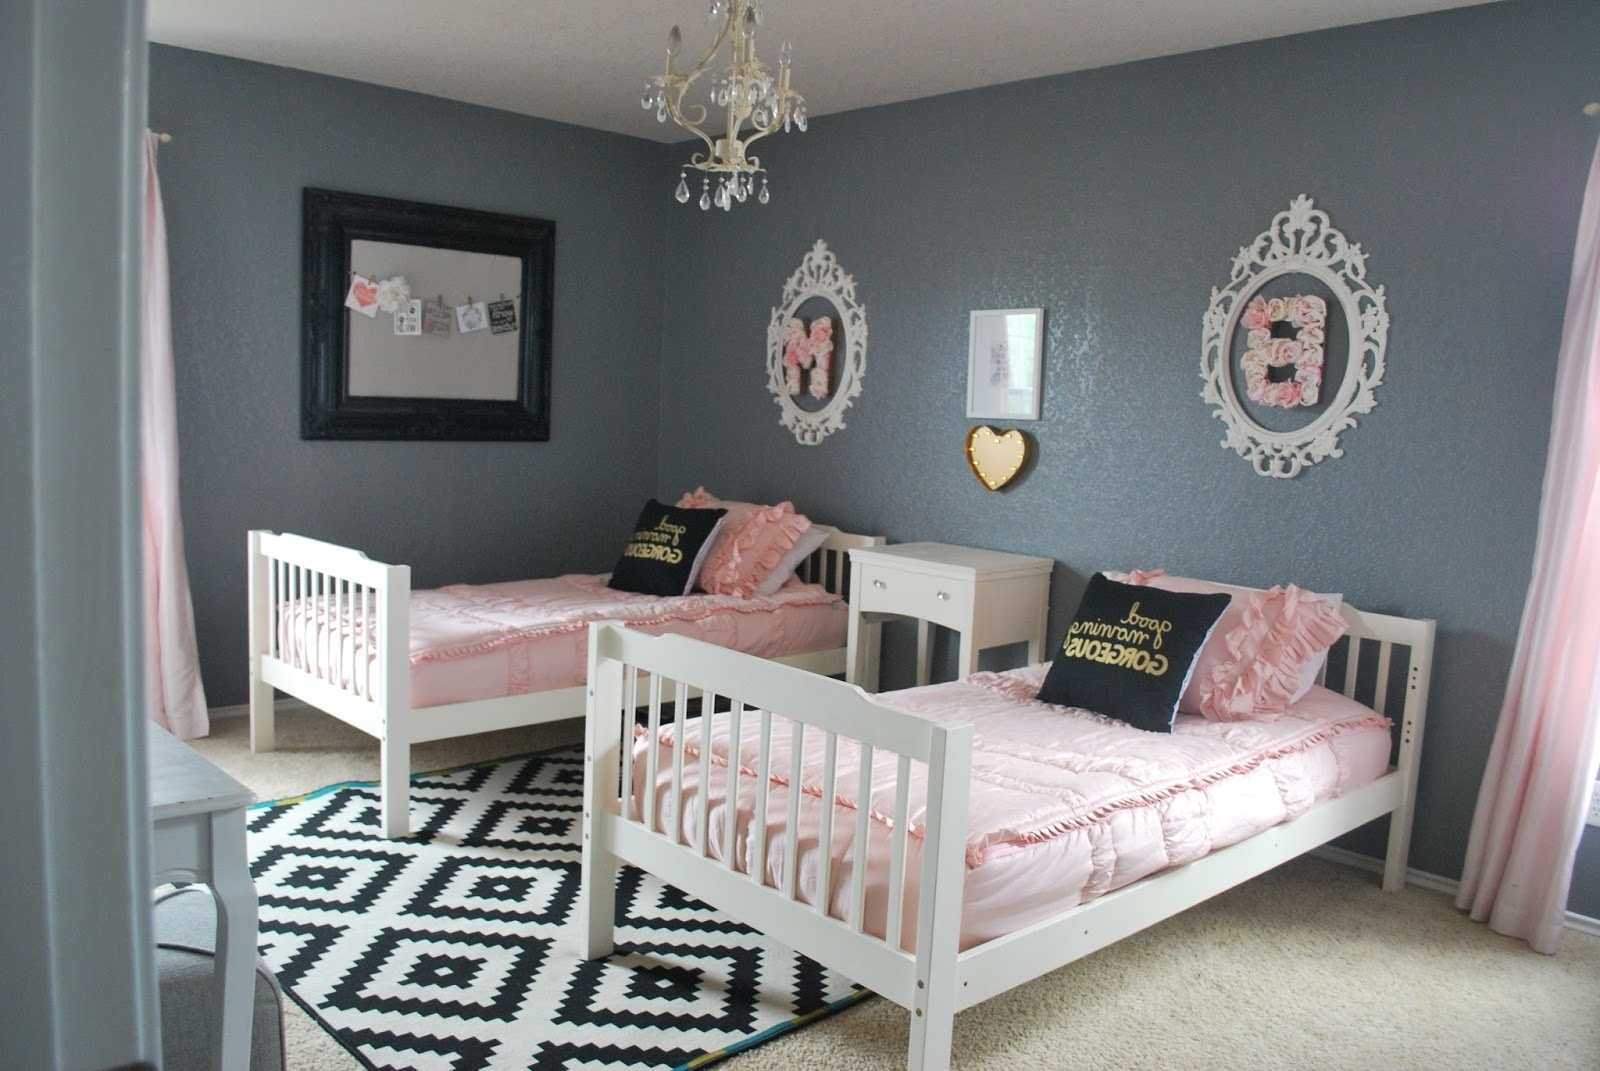 Bits Of Splendor: Girls' Room Makeover With How To Decorate A Girls Room (View 18 of 24)